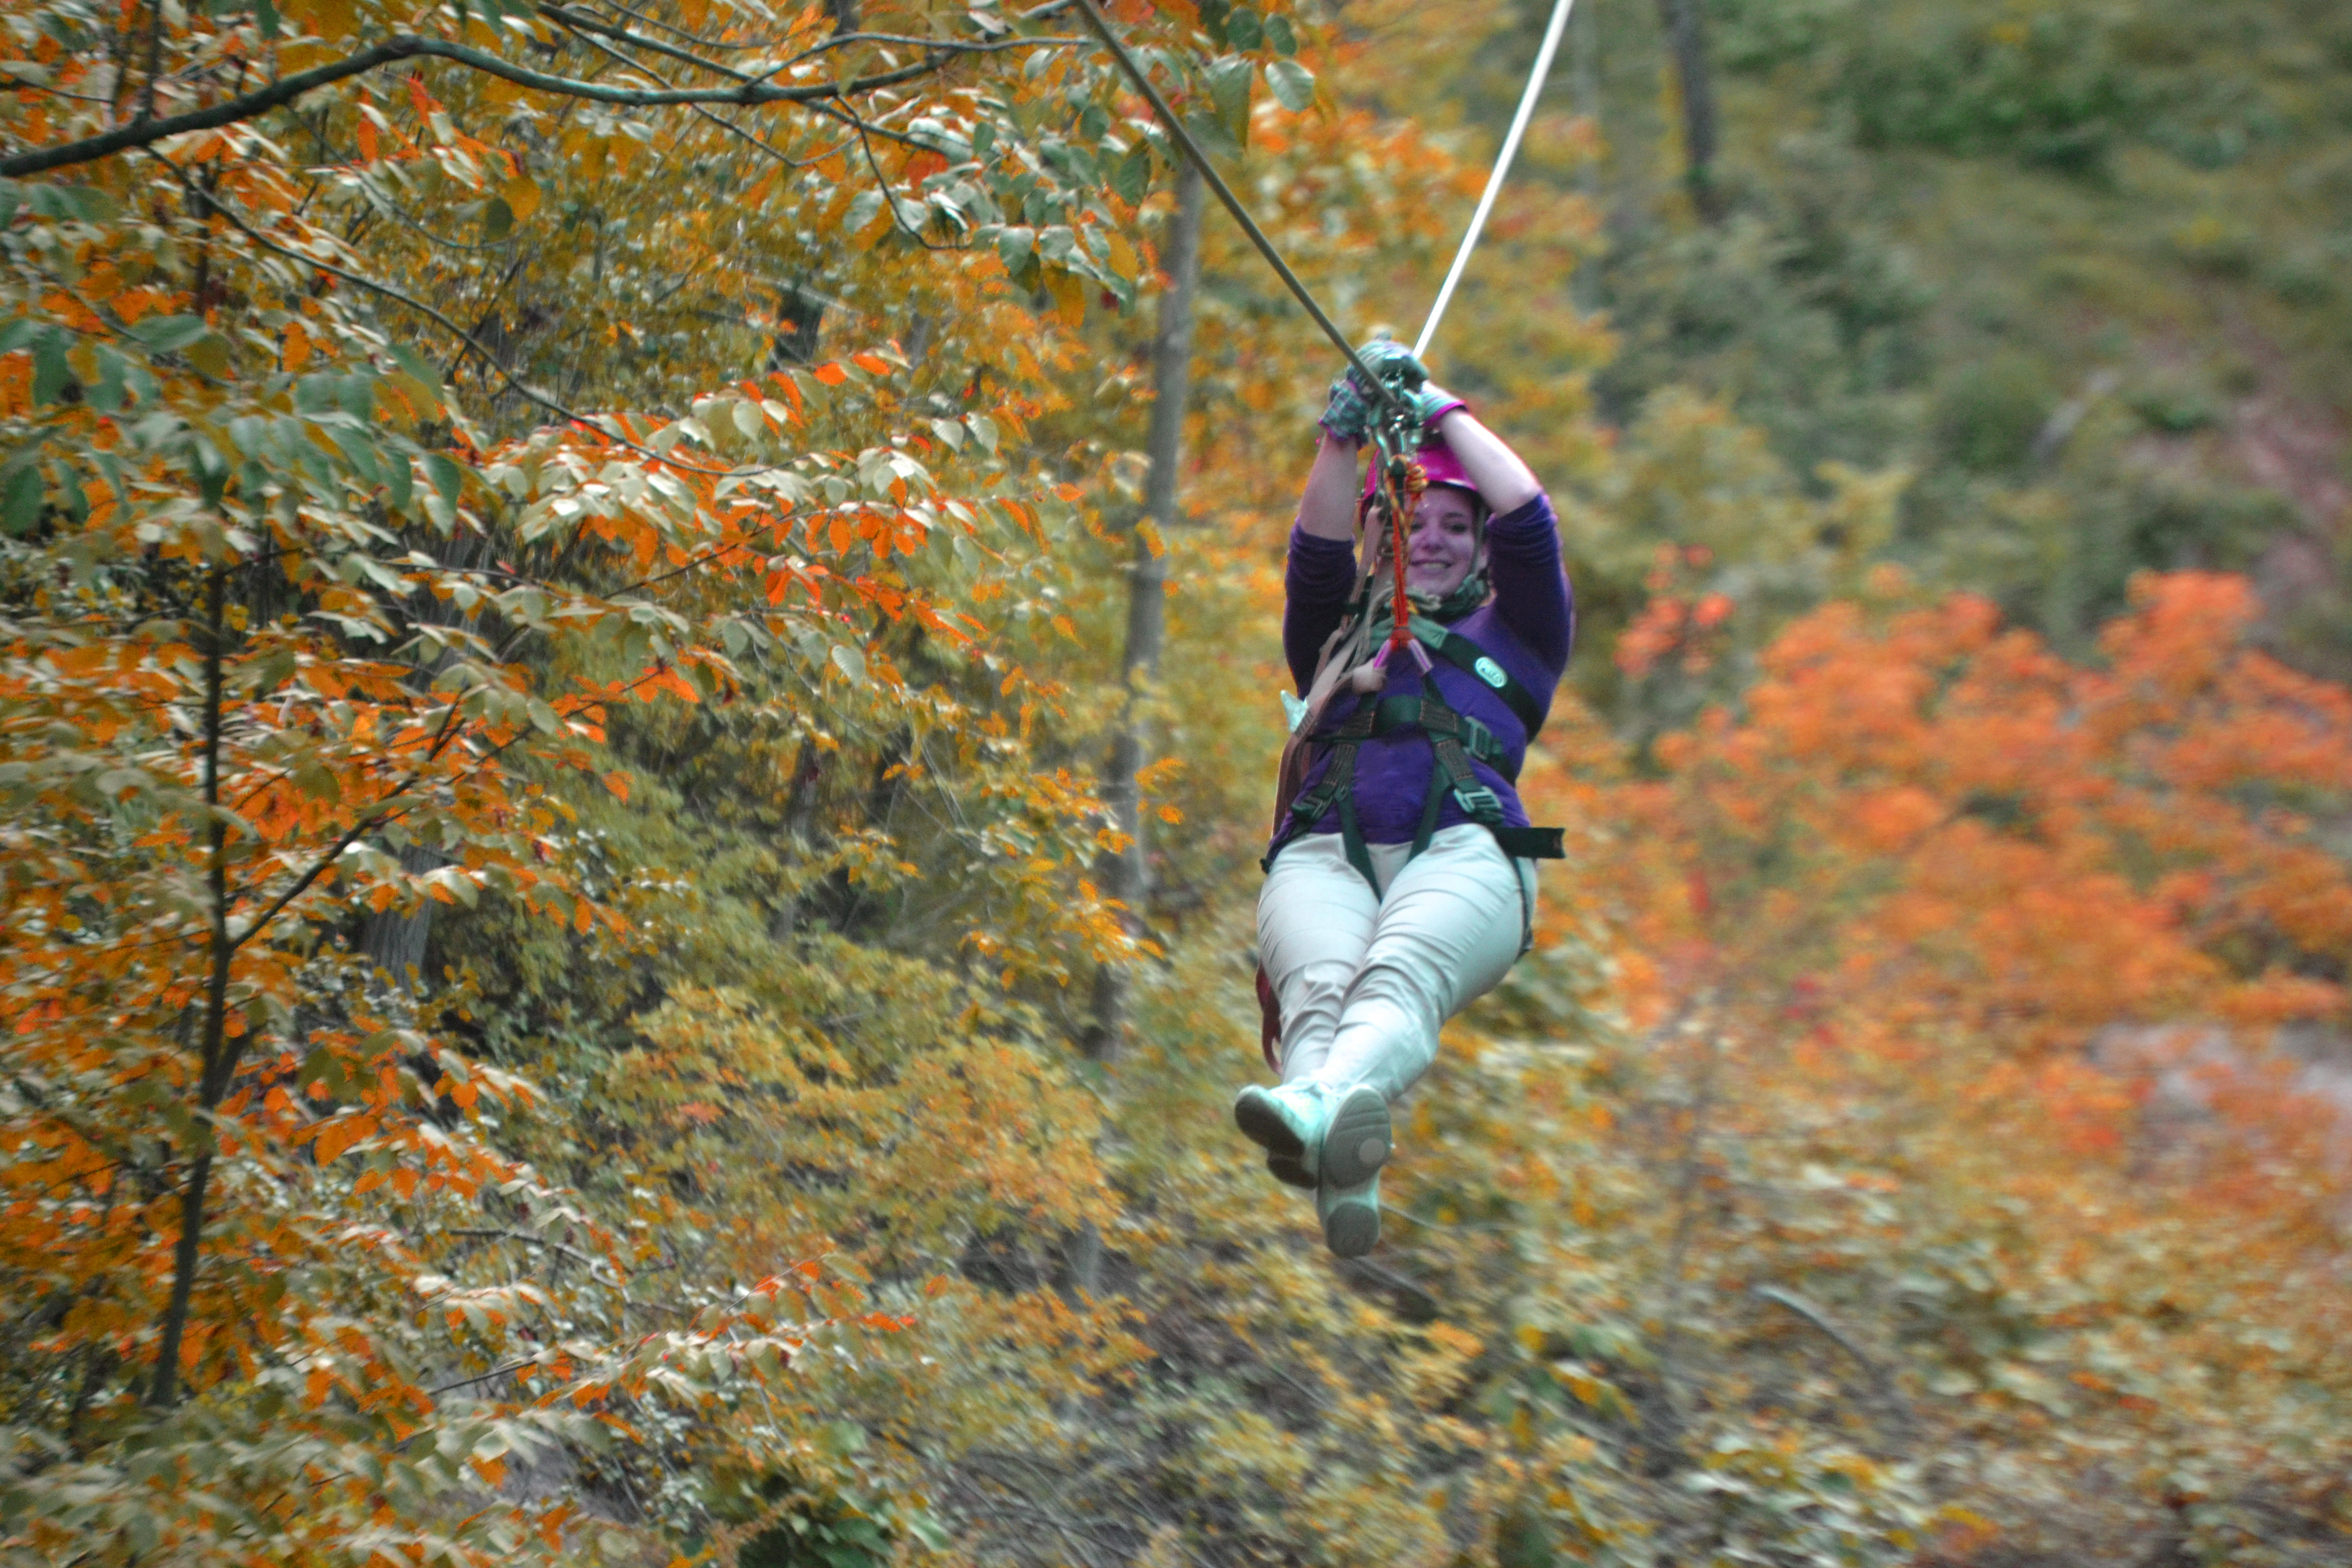 Experience Fall Colors In A Whole New Way Eye Level Zip Through The Trees With Lake Geneva Canopy Tours